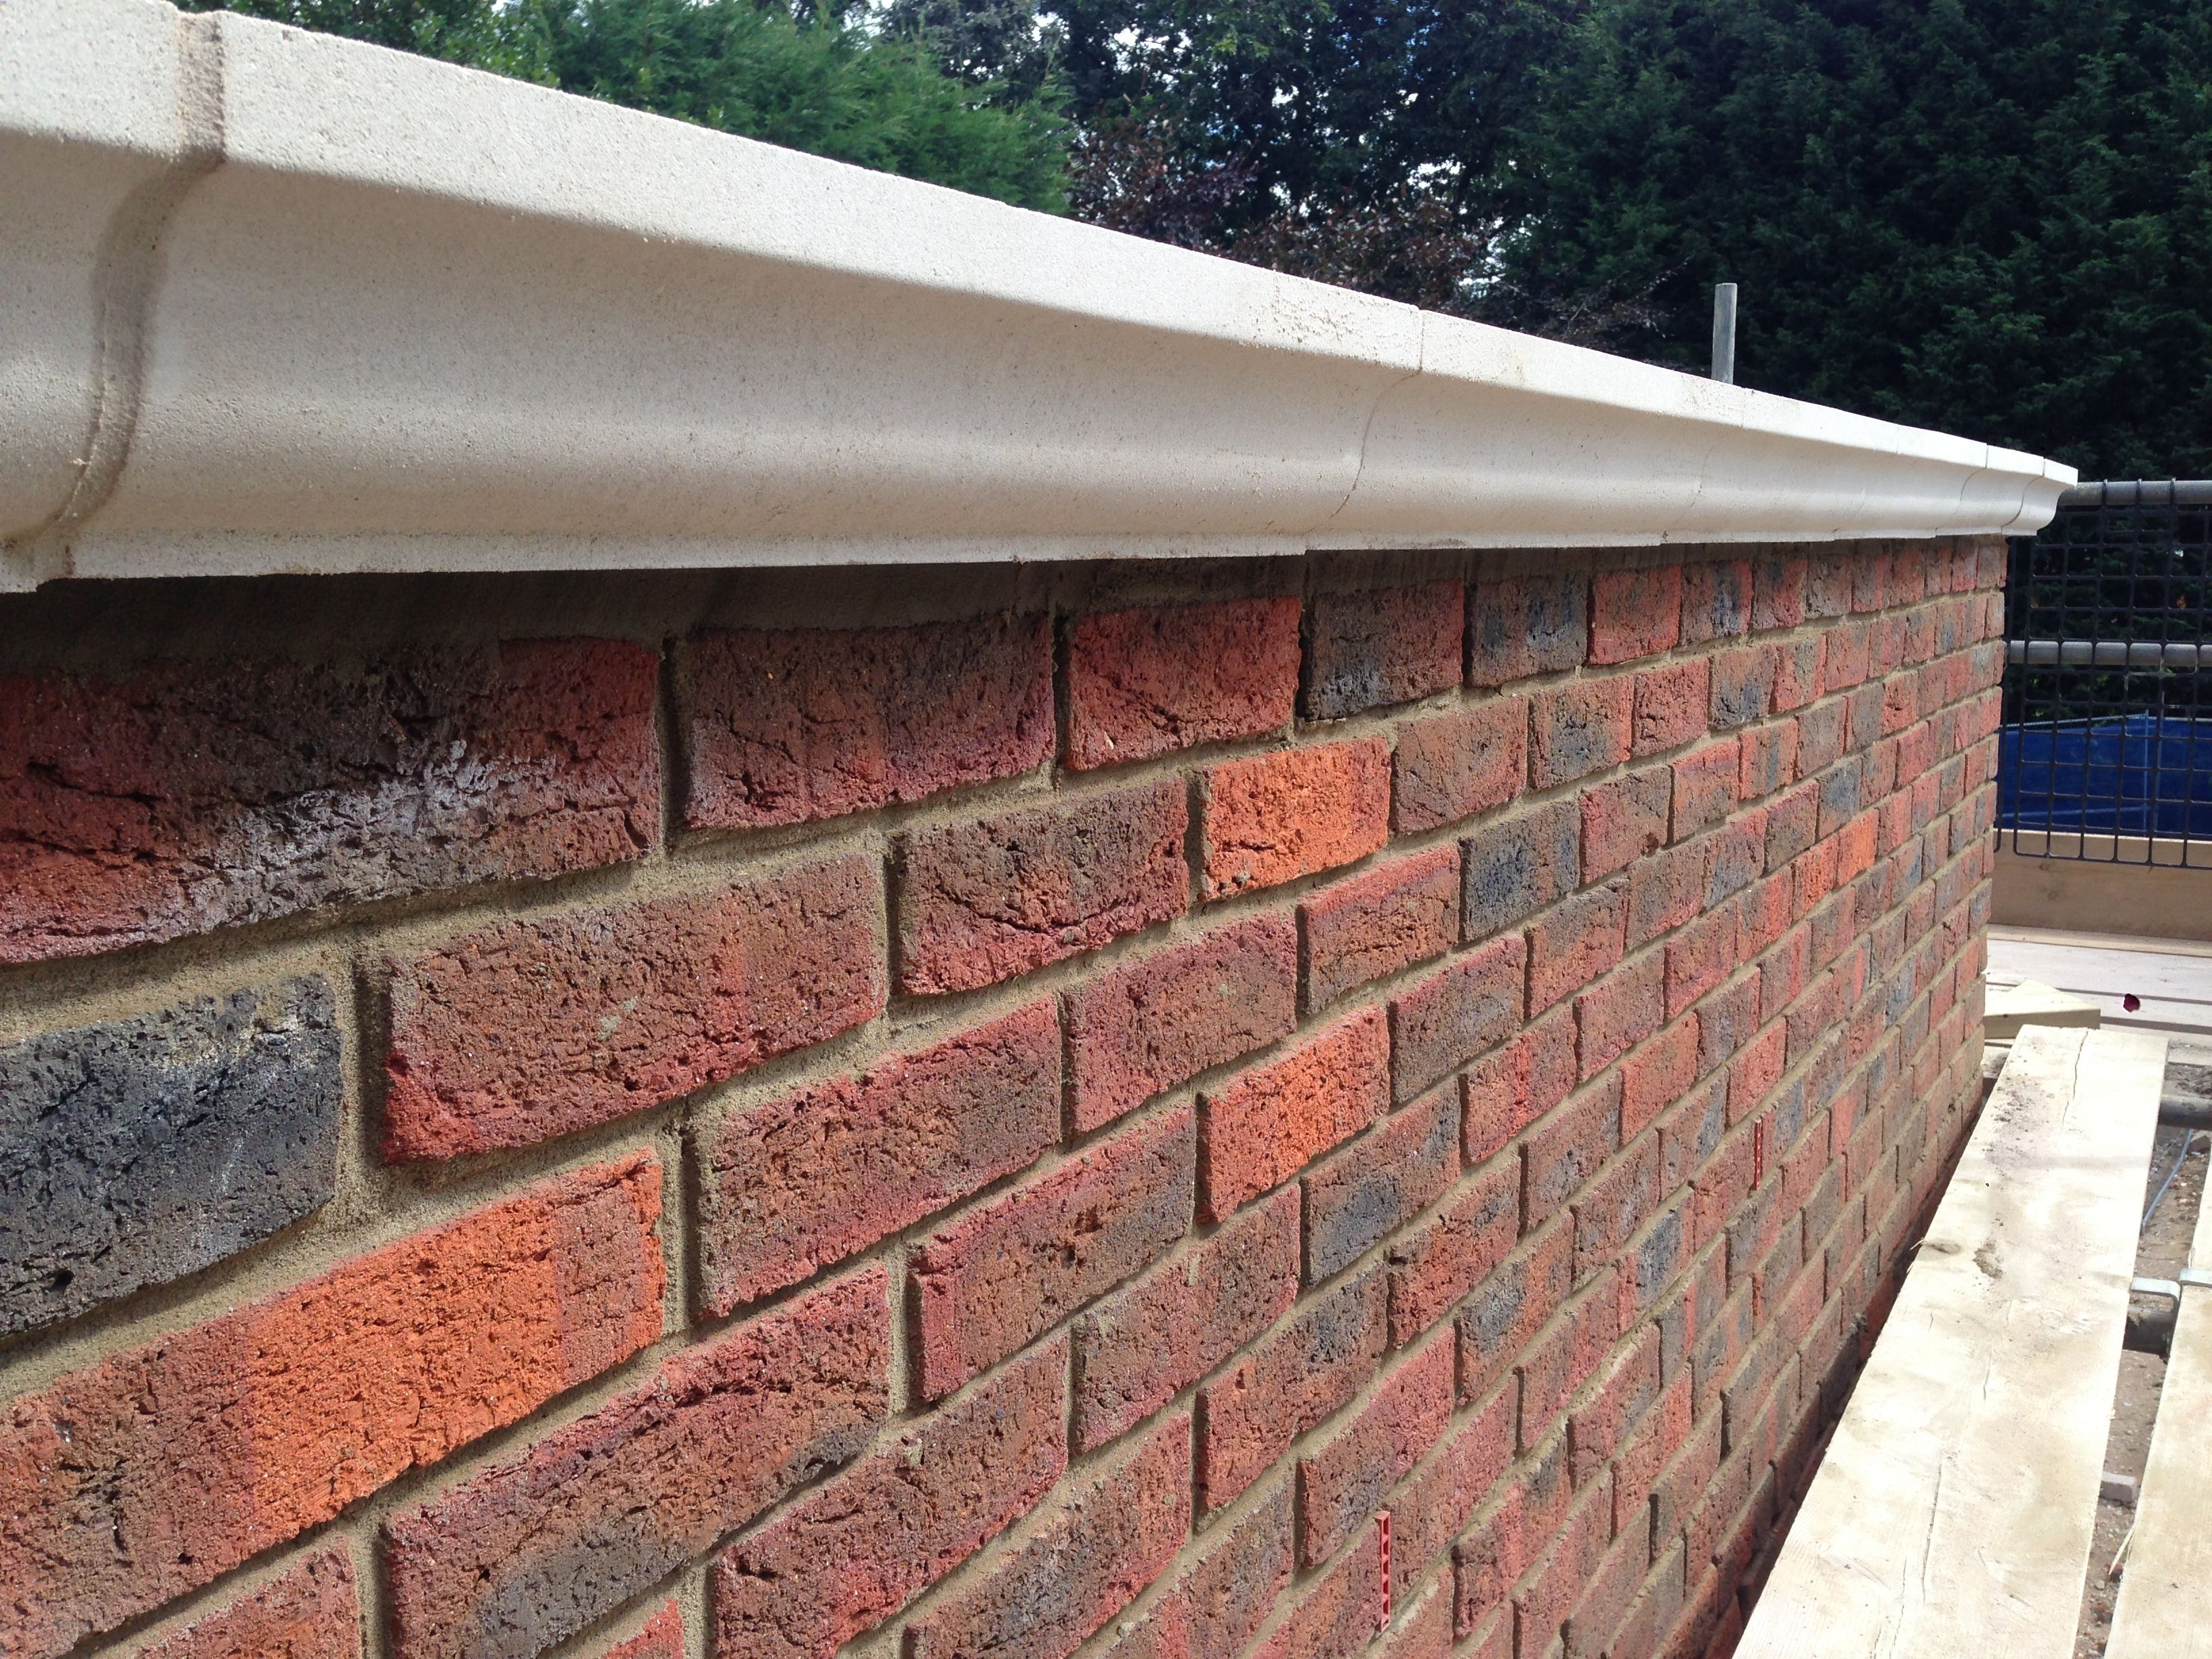 Parapet wall topped with coping stones rendering for Parapet roof design pictures